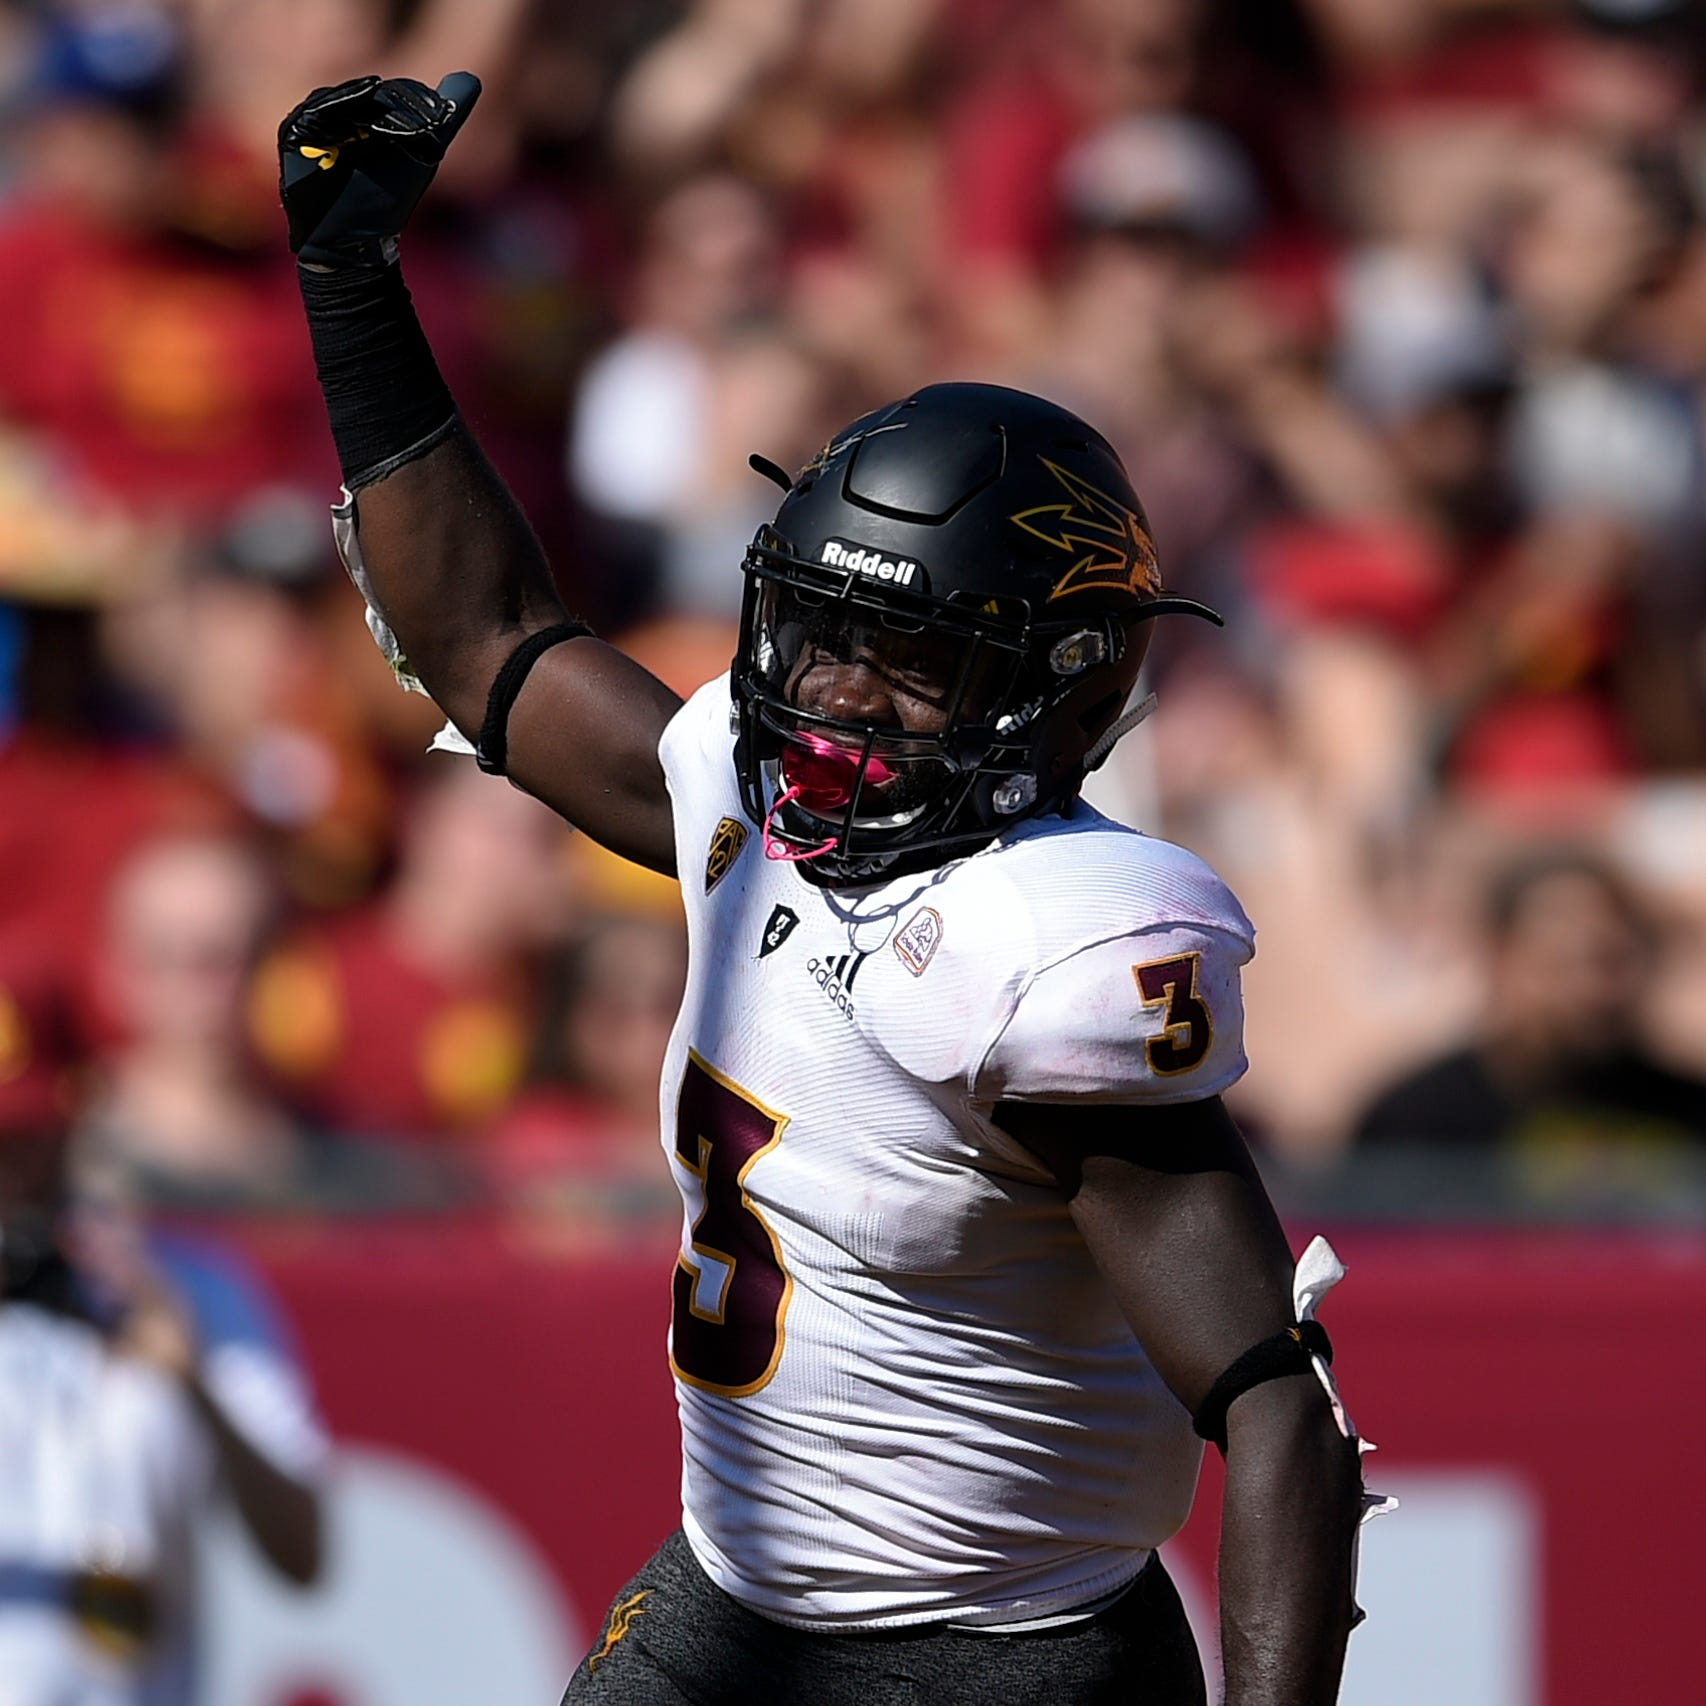 ASU sophomore back Eno Benjamin humble as records pile up